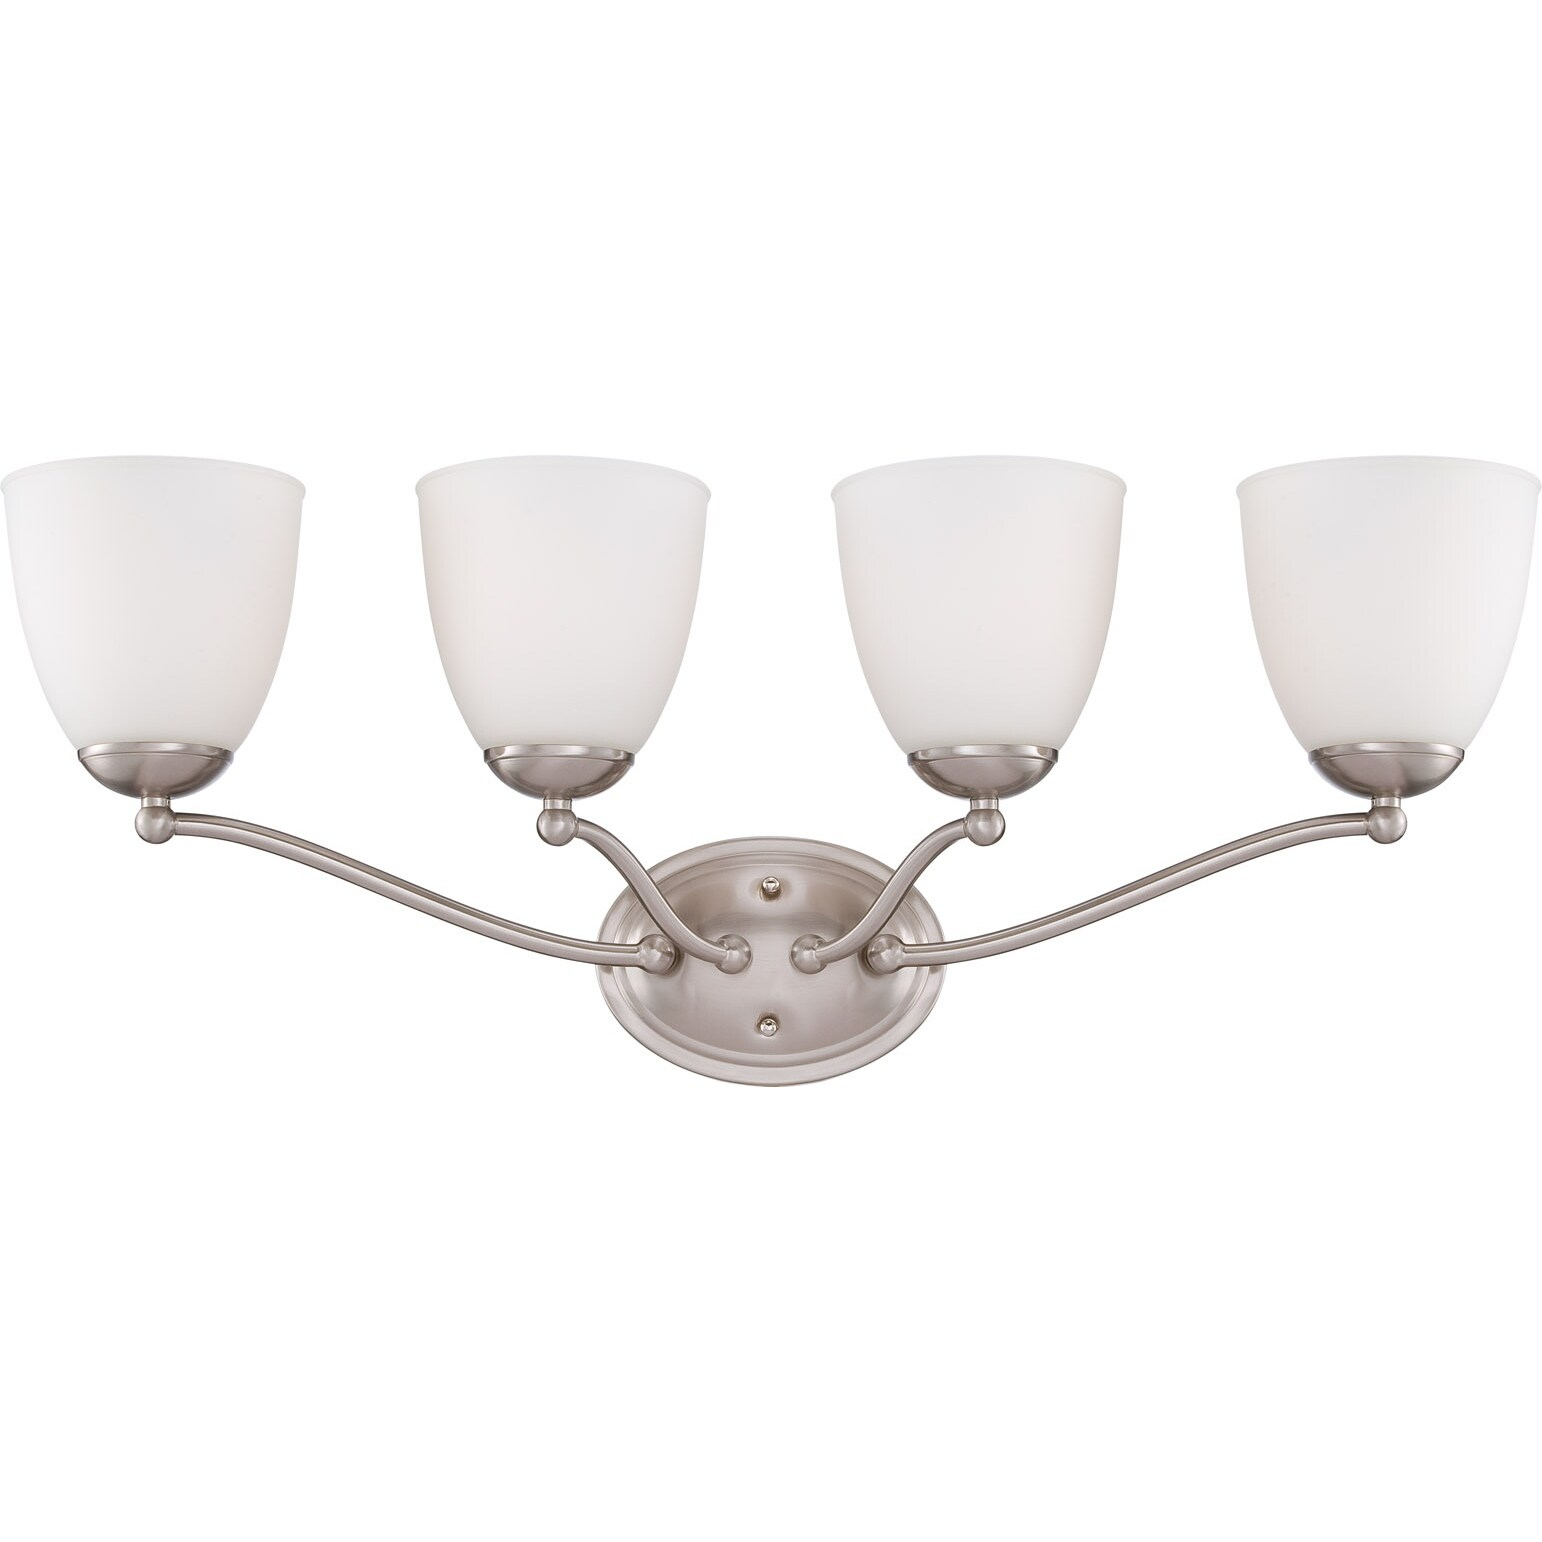 Nuvo 'Patton' 4-light Brushed Nickel Fluorescent Vanity Fixture - Thumbnail 0